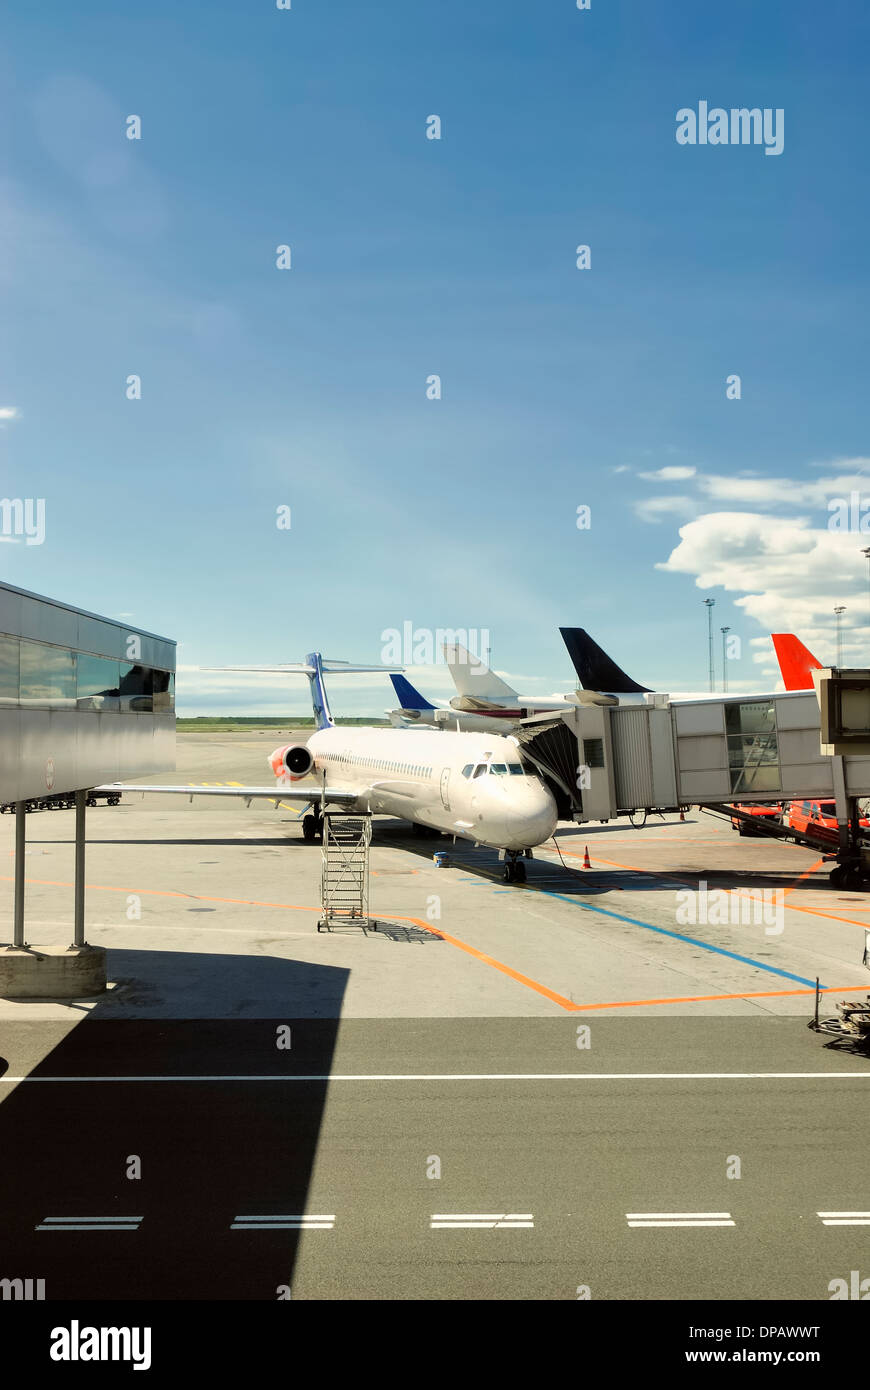 Airplanes on airport - Stock Image